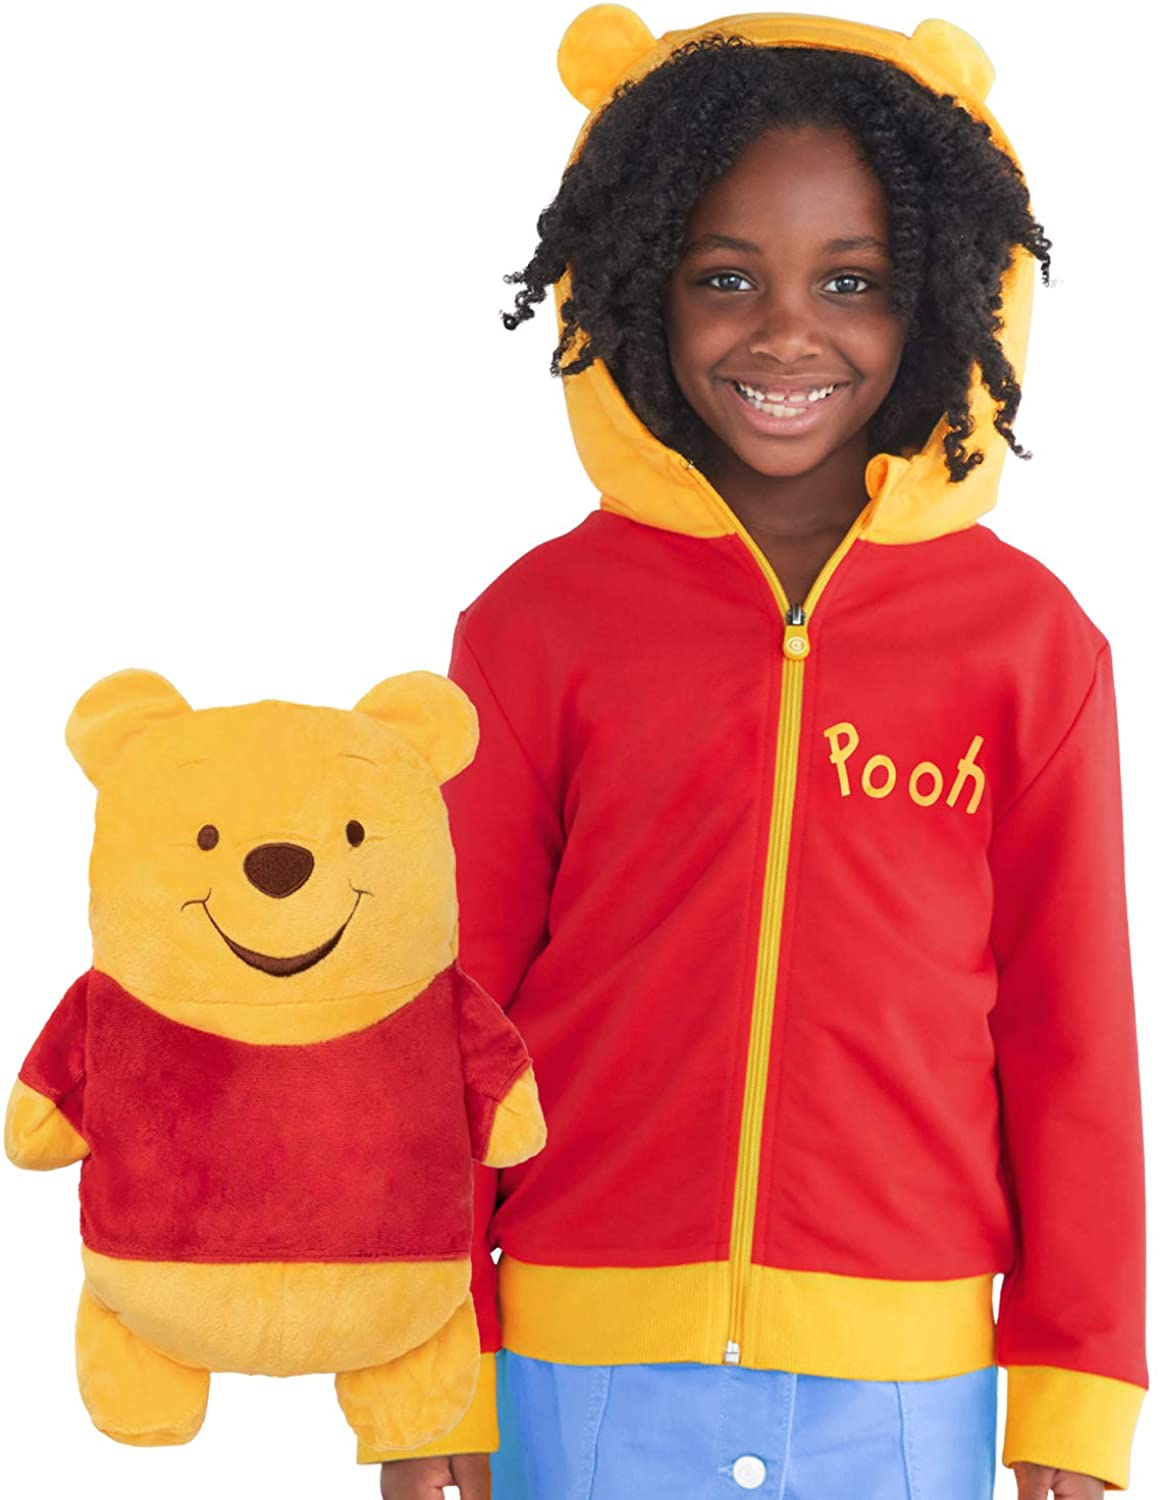 Pooh Hoodie and Soft Plushie For Kids